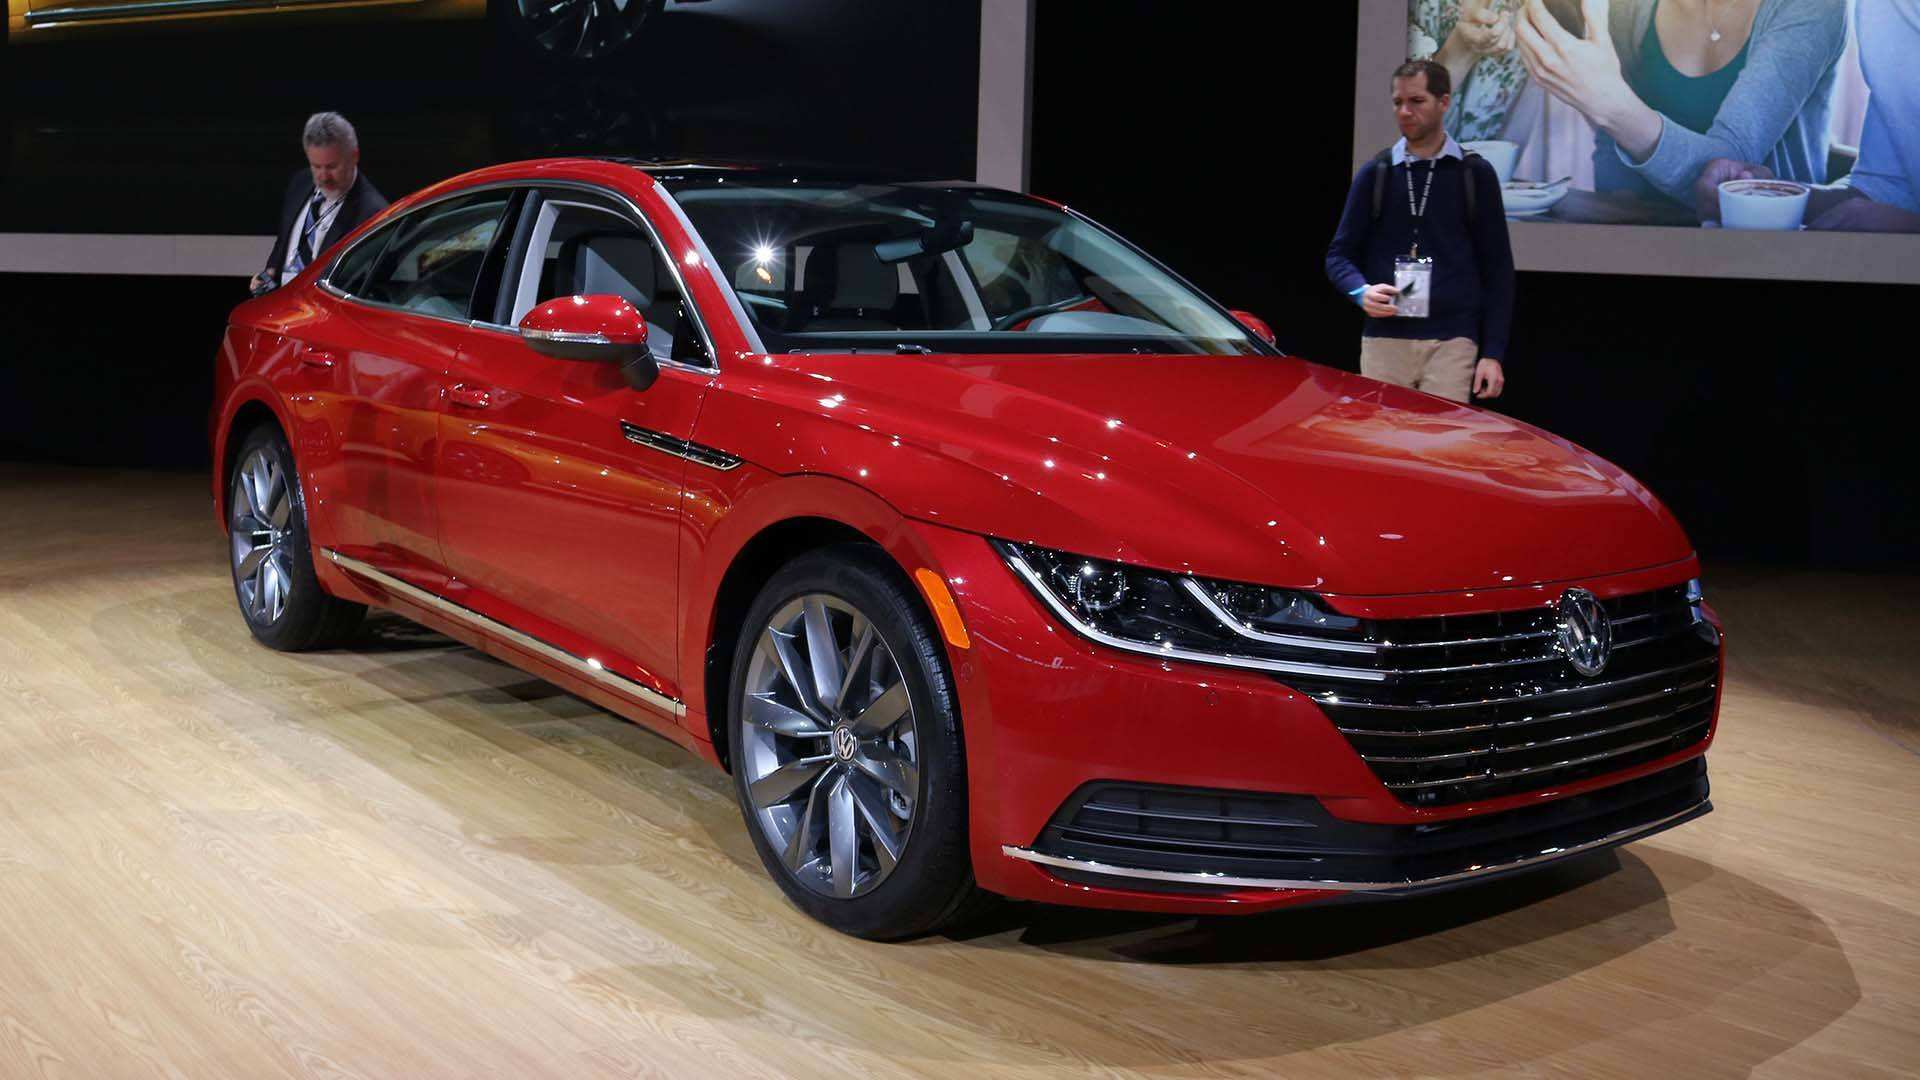 54 Best Review 2019 Vw Arteon Specs and Review for 2019 Vw Arteon